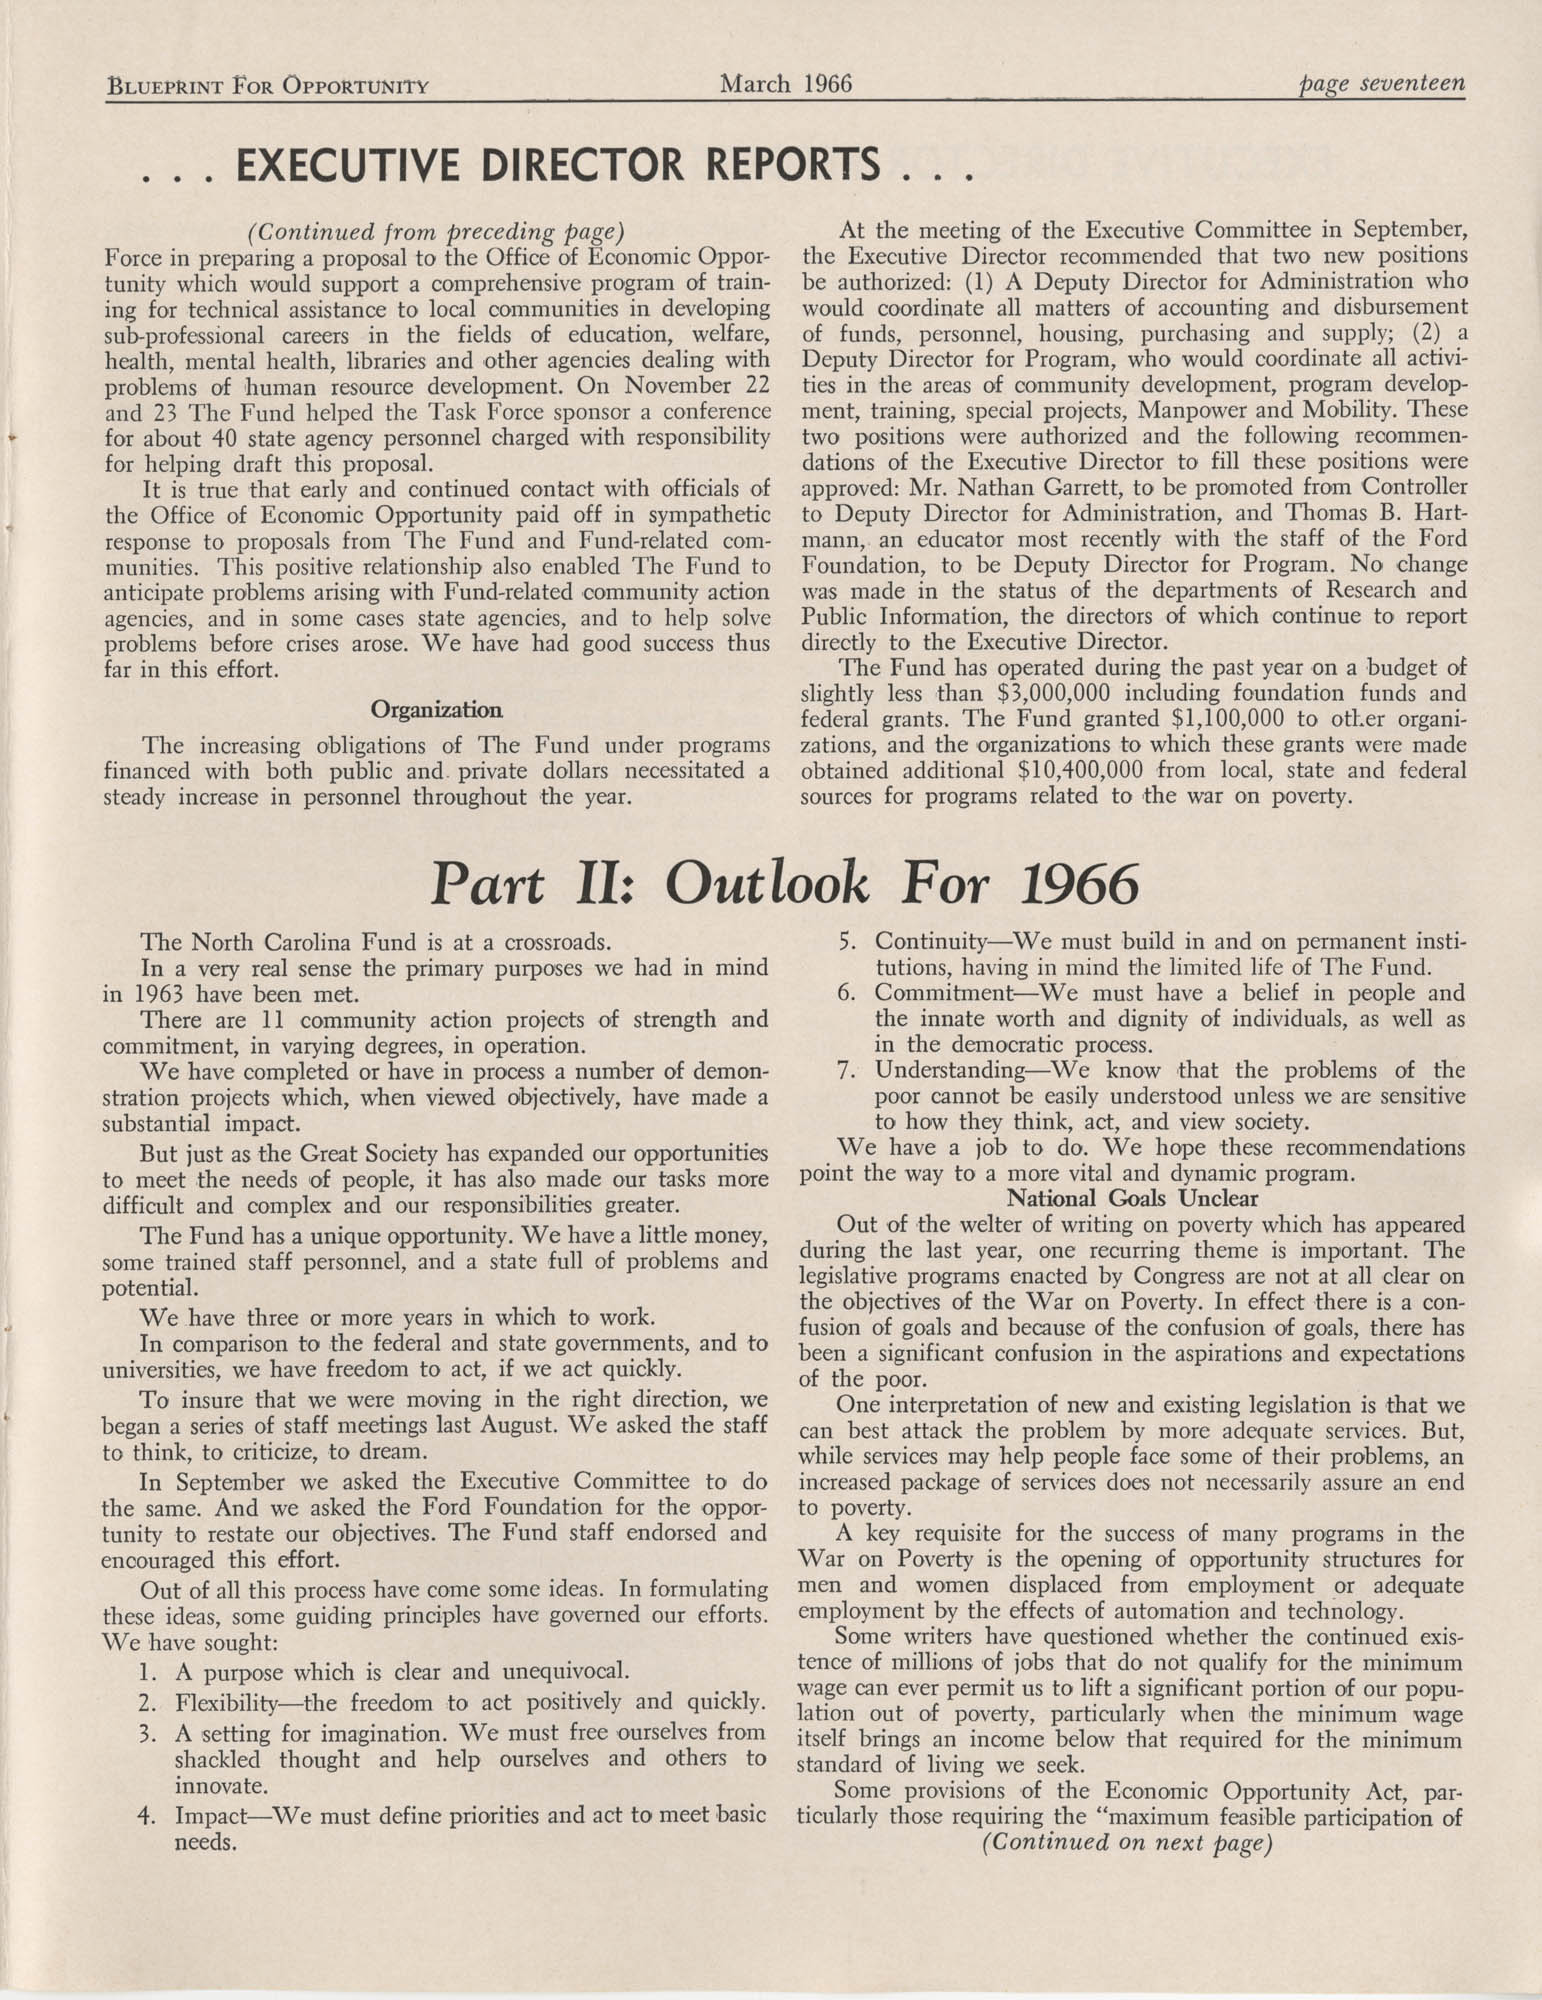 Blueprint for Opportunity, Vol. 2, No. 1, Page 17